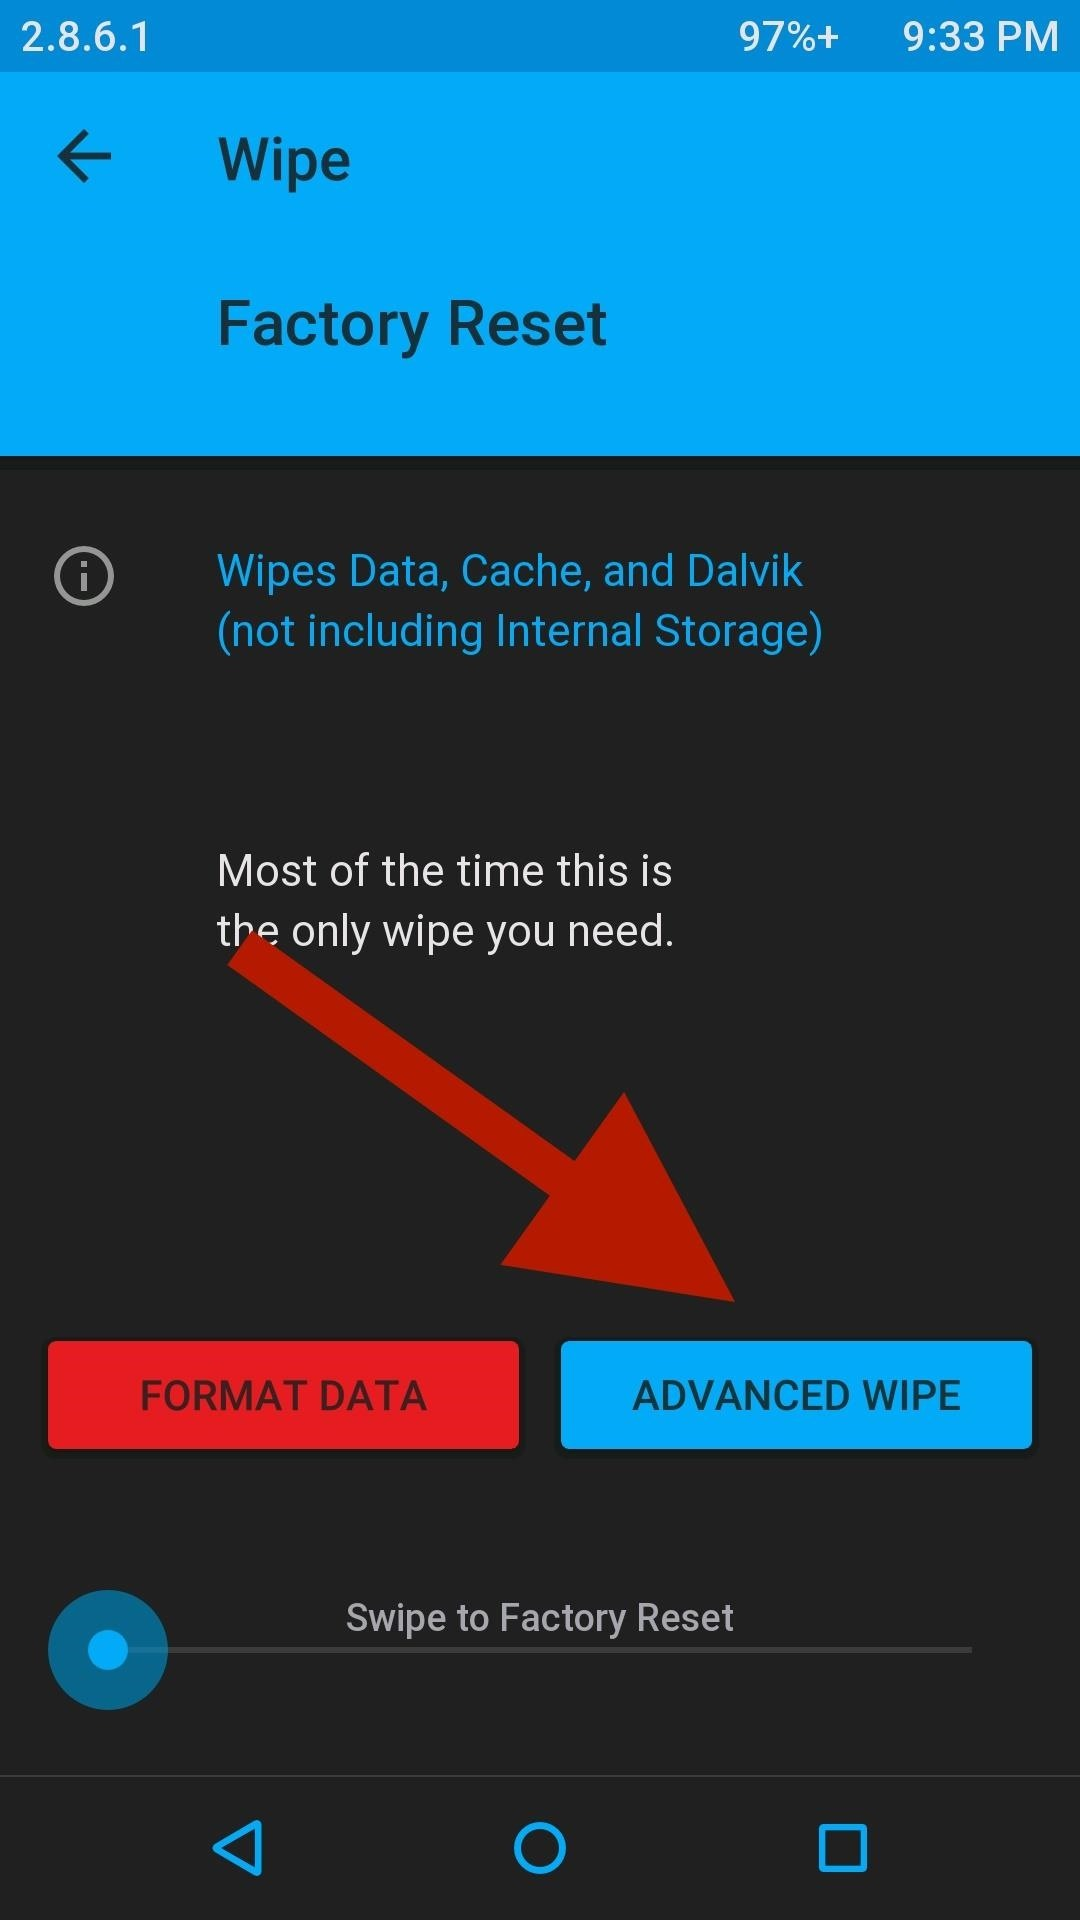 The Best Way to Wipe Data & Completely Delete Your Data on Android